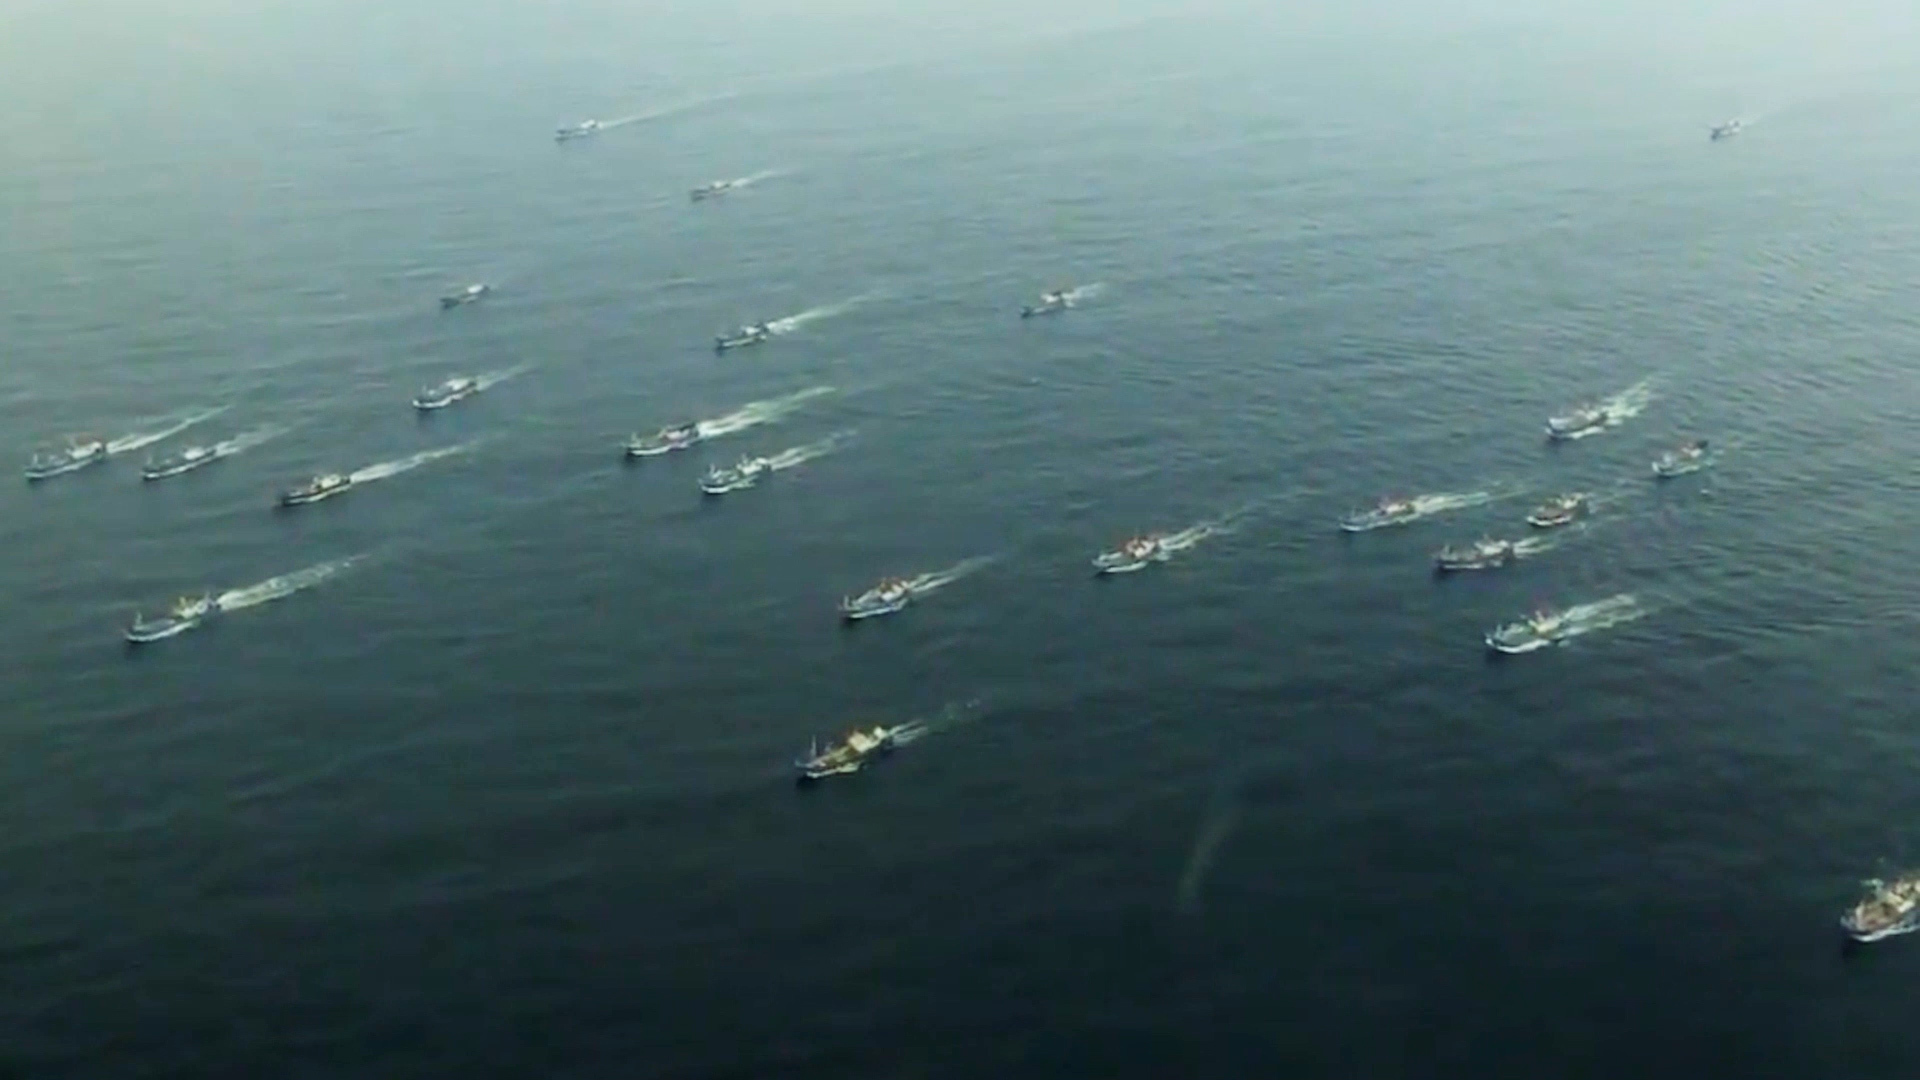 Chinese pair trawlers headed to fishing grounds in the Sea of Japan, or East Sea. (South Korea Fisheries Agency/The Outlaw Ocean Project)